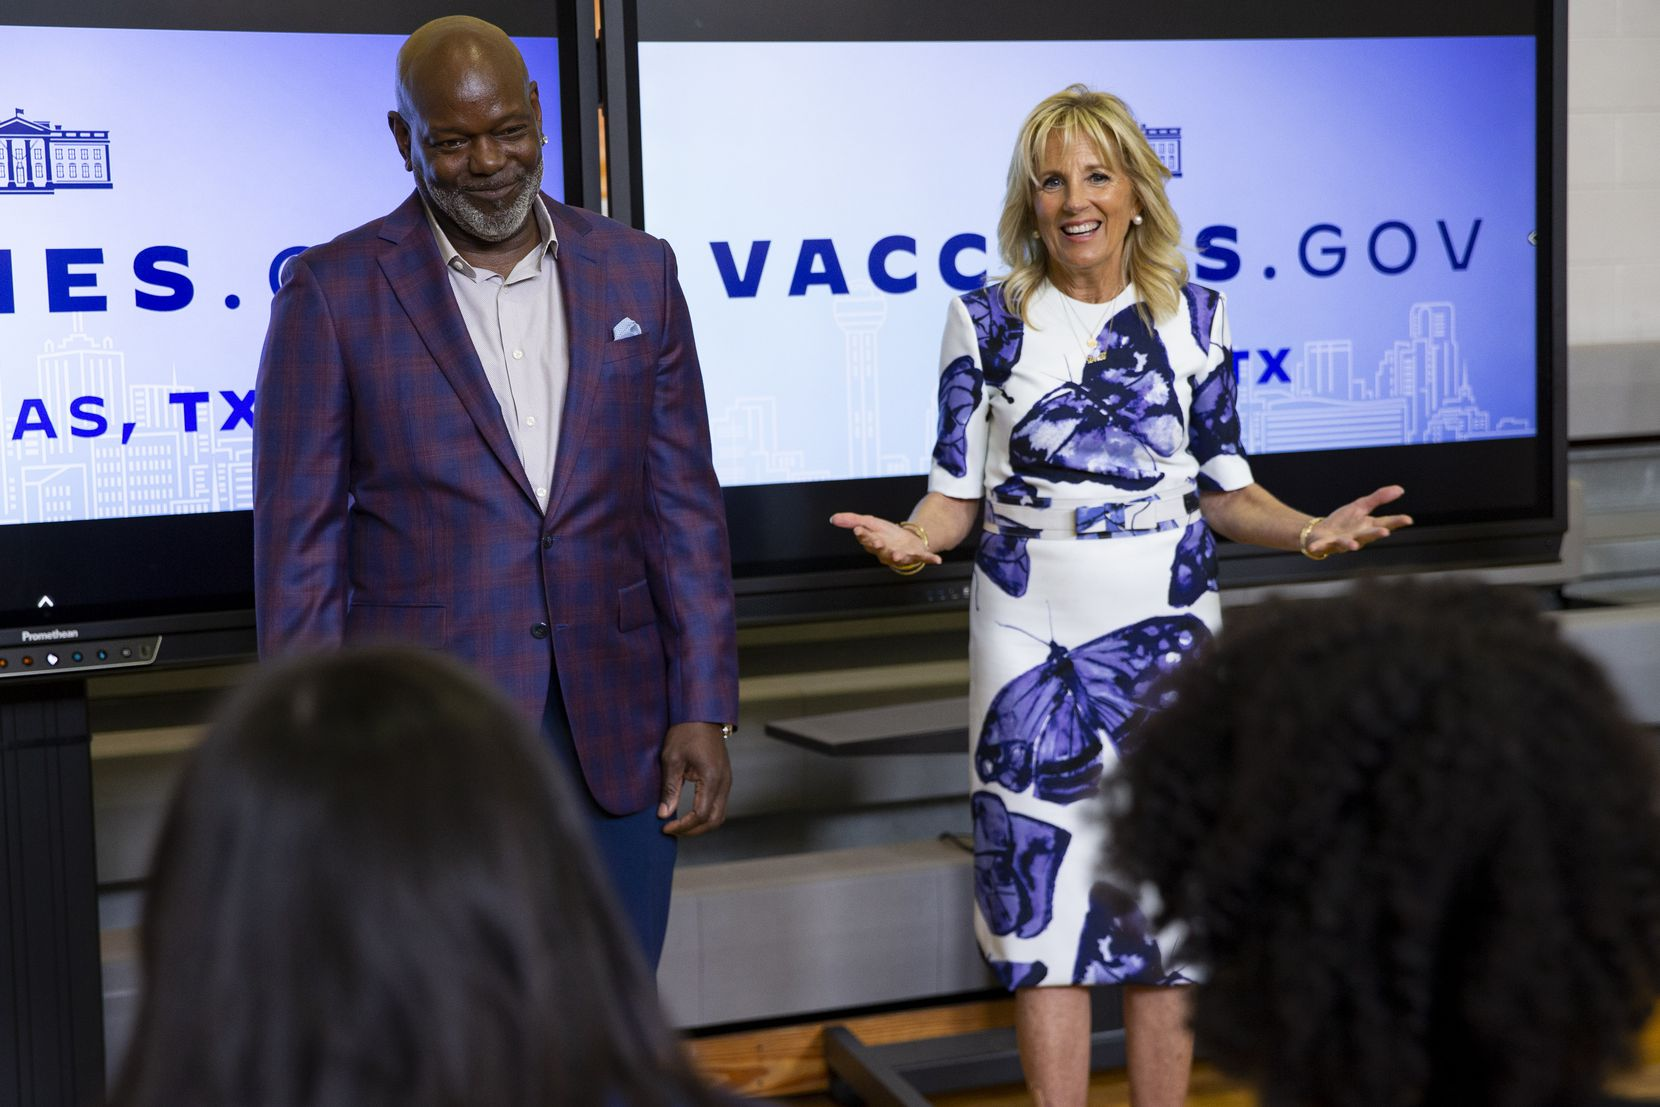 Dallas Cowboys legend Emmitt Smith (left) and First Lady Jill Biden speak to people in the observation area on Tuesday, June 29, 2021, during a tour of the vaccination site at Emmett J. Conrad High School in Dallas. (Juan Figueroa/The Dallas Morning News)